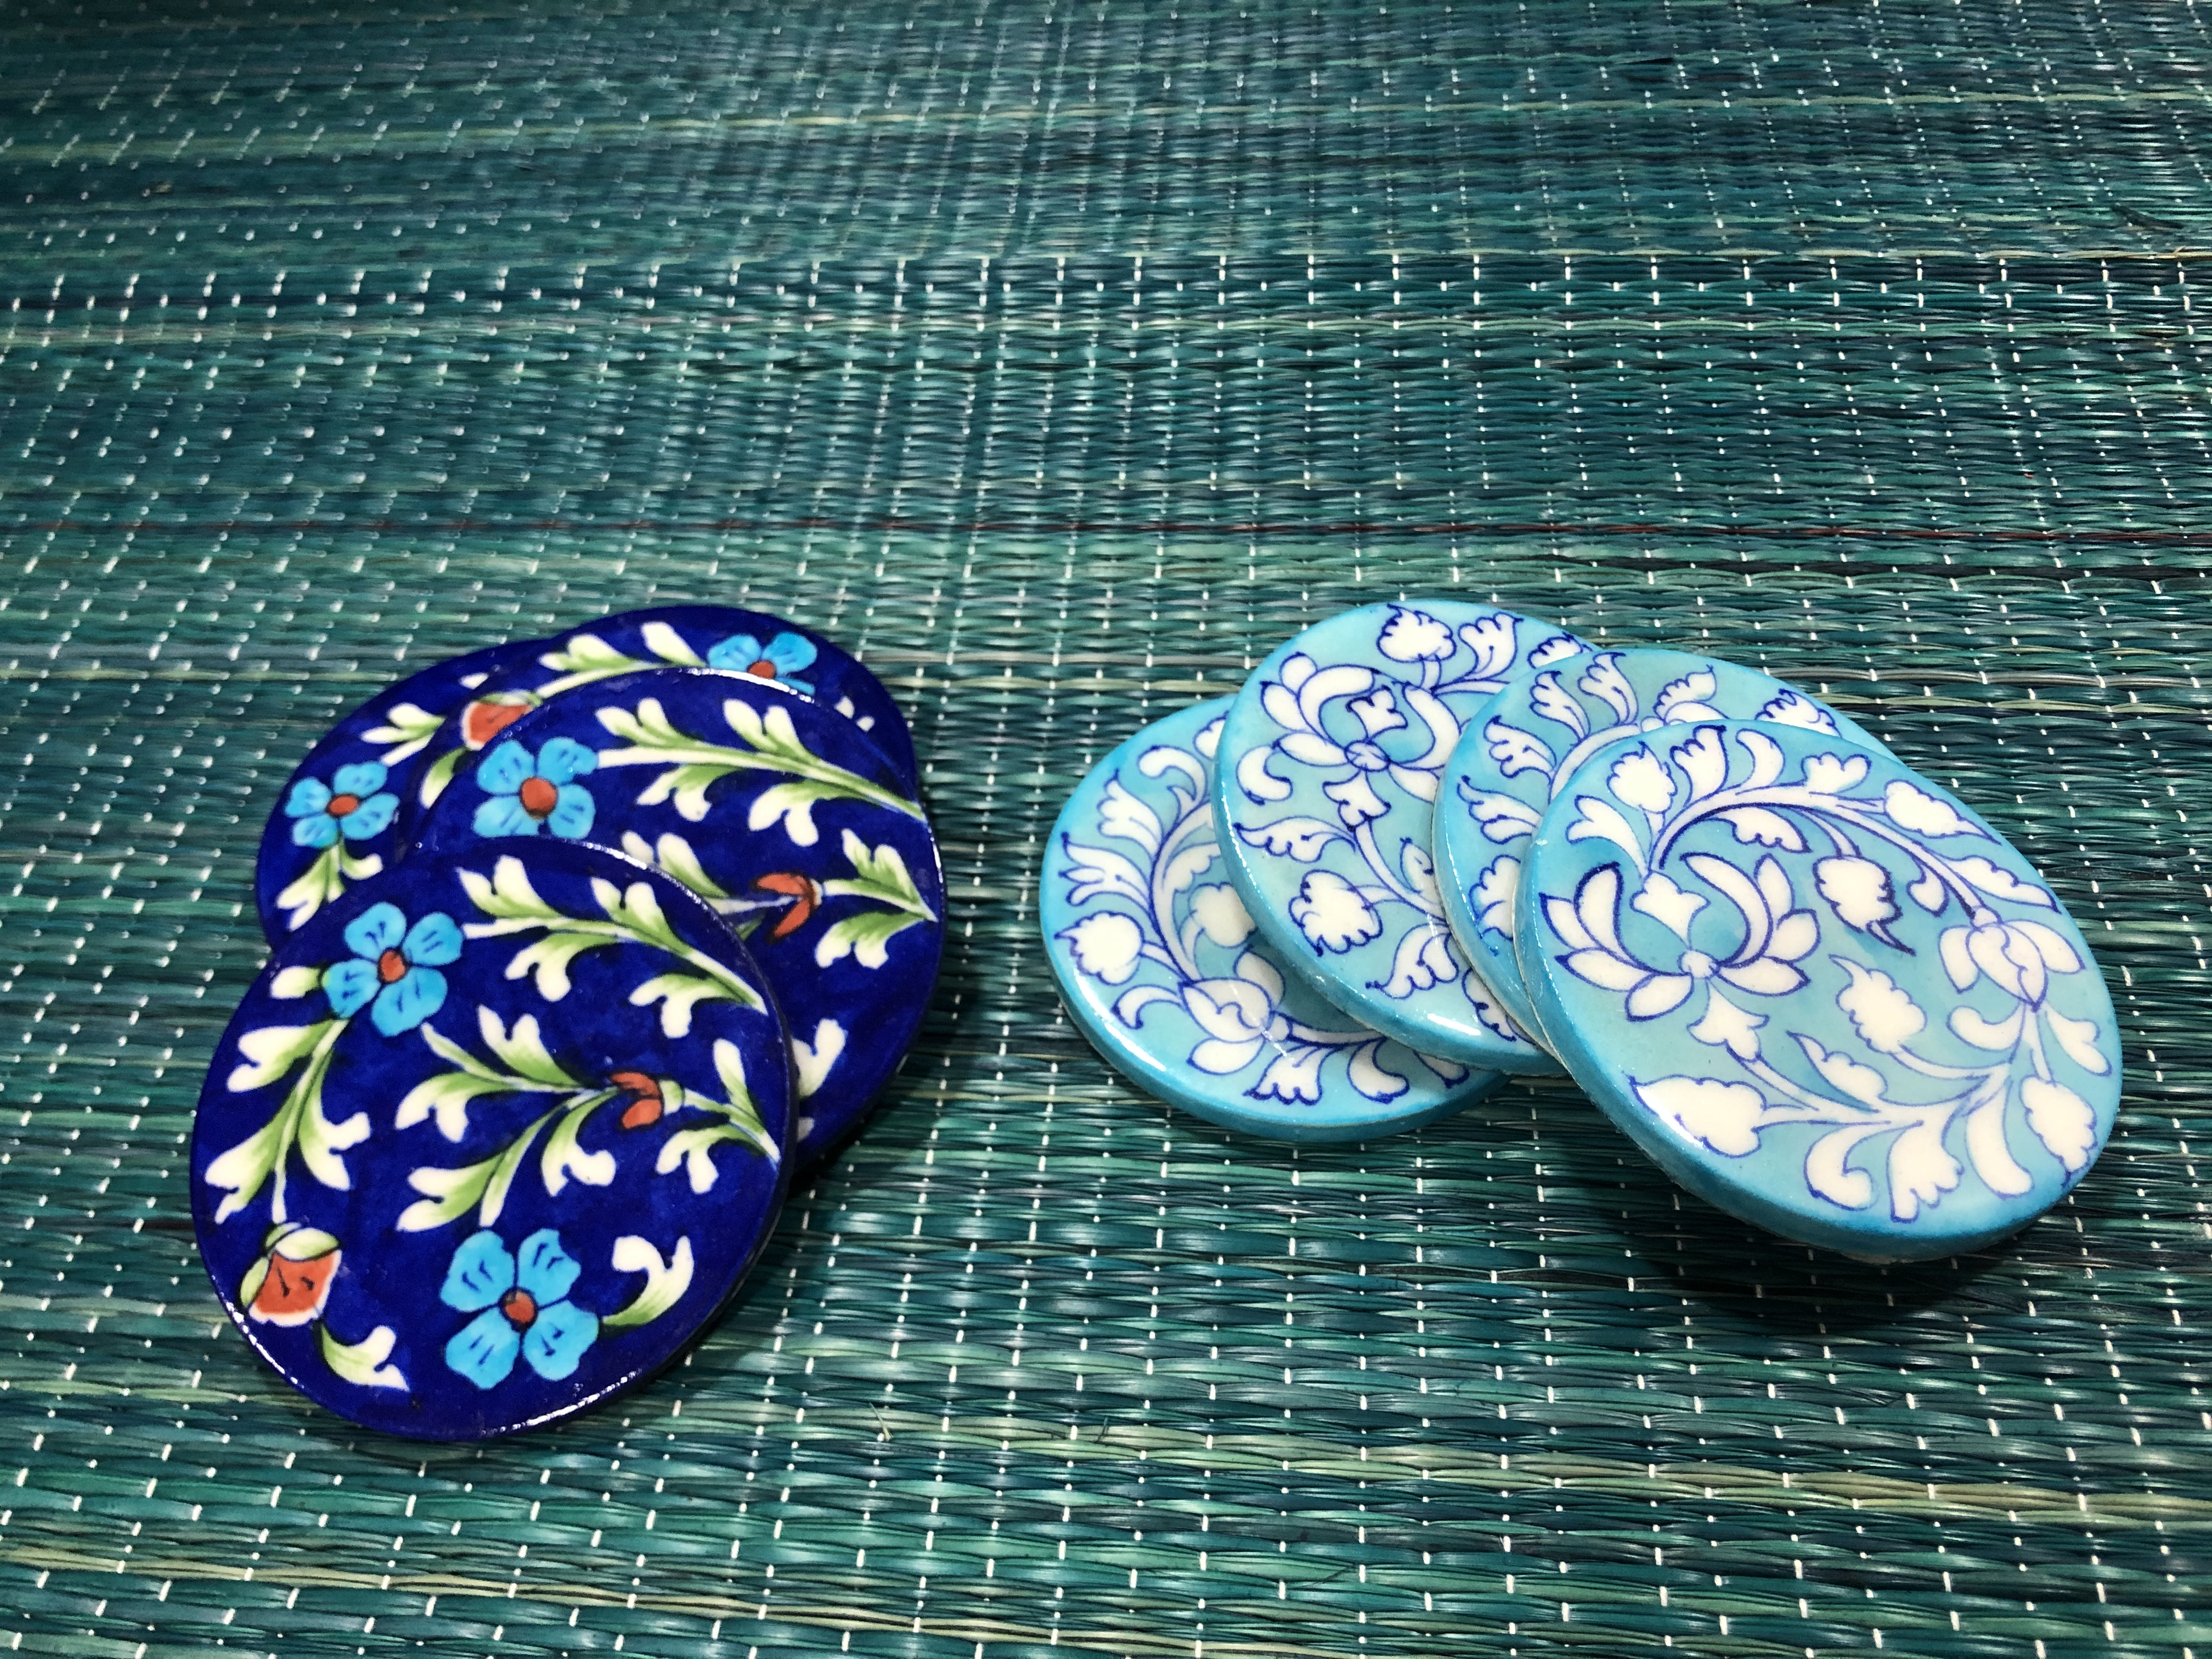 Coasters - with colourful imprints